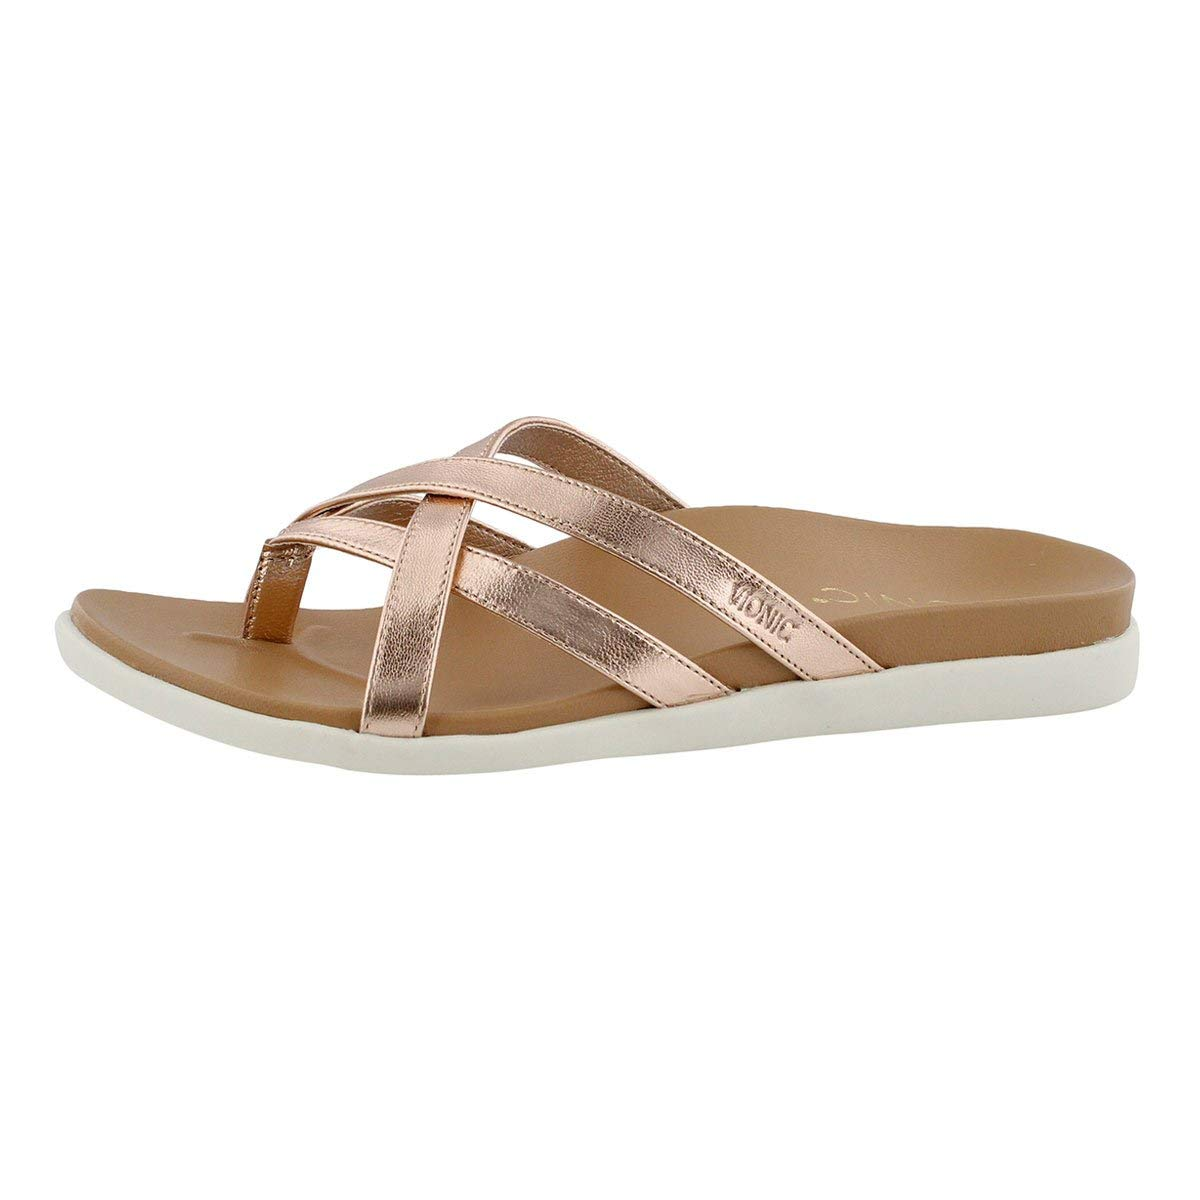 Mtlc rsgld Vionic Women's Palm Daisy Arch Support Thong Sandal